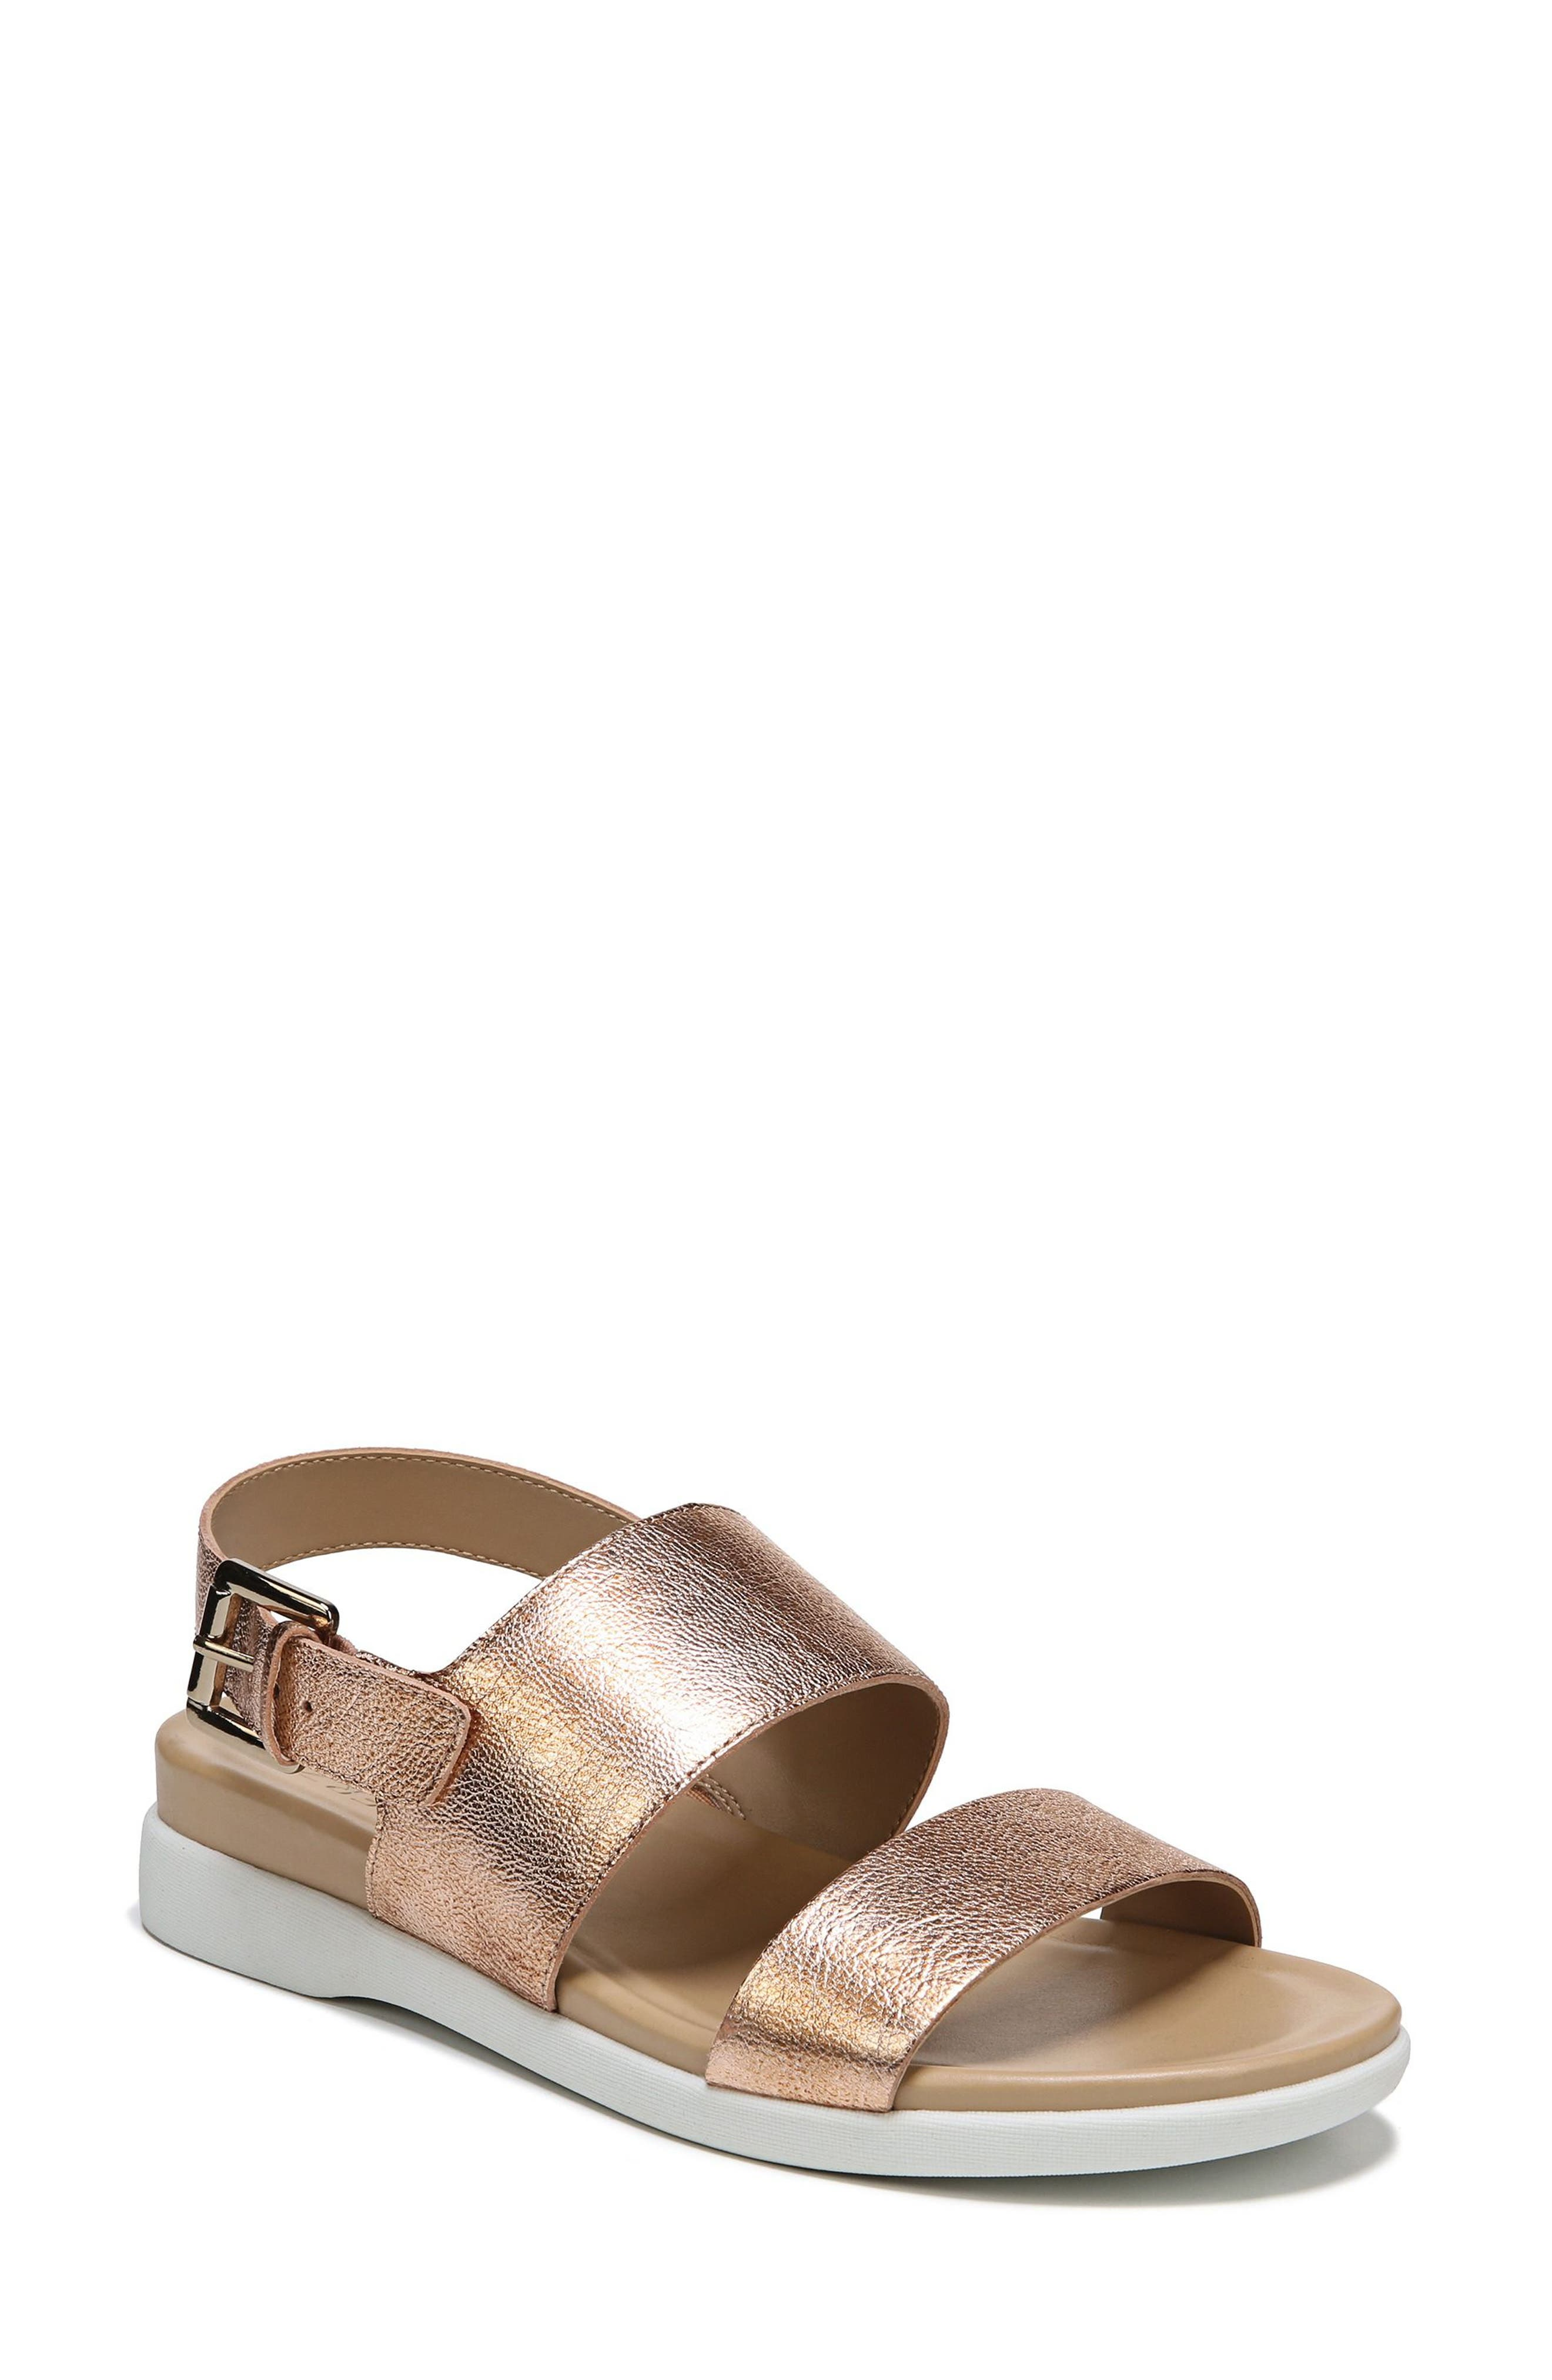 Emory Sandals